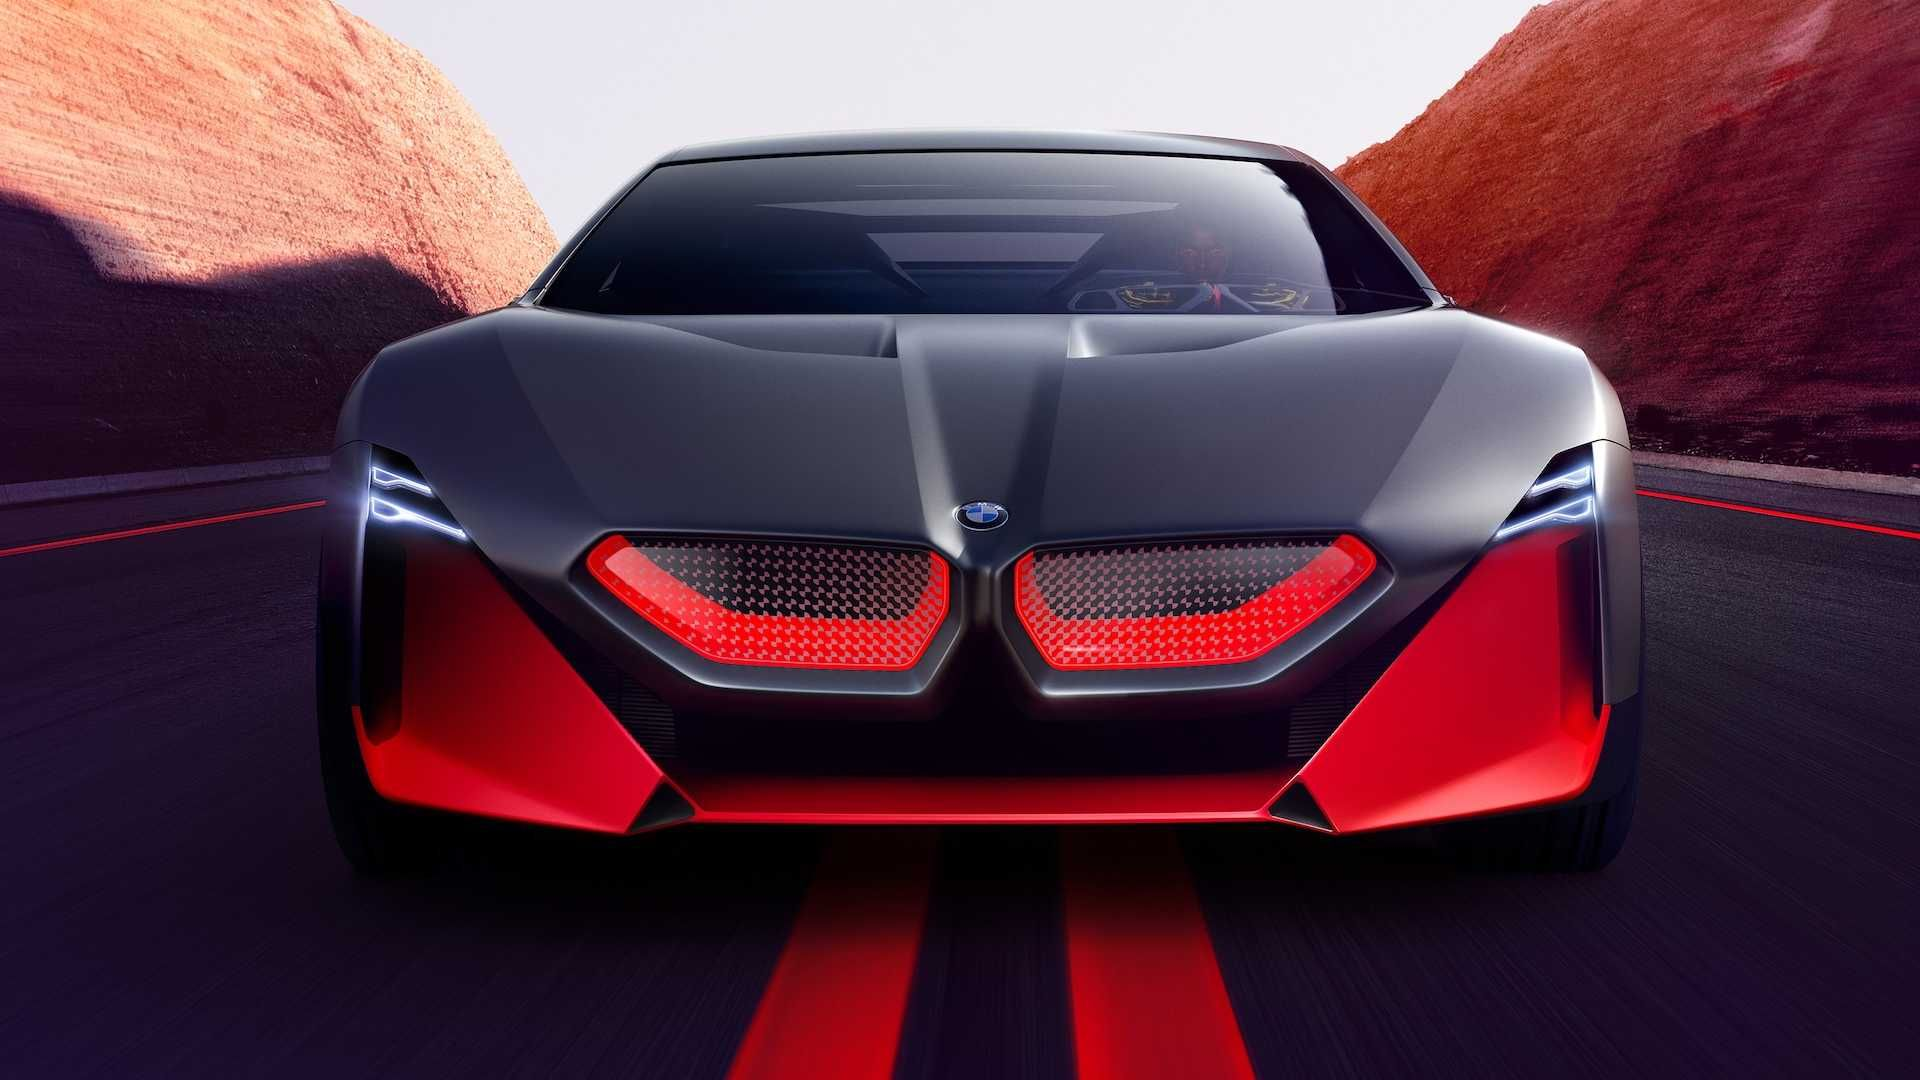 Bmw Vision M Concept Is A Stunning And Futuristic M1 Bmw Concept Car Super Cars Bmw Sports Car